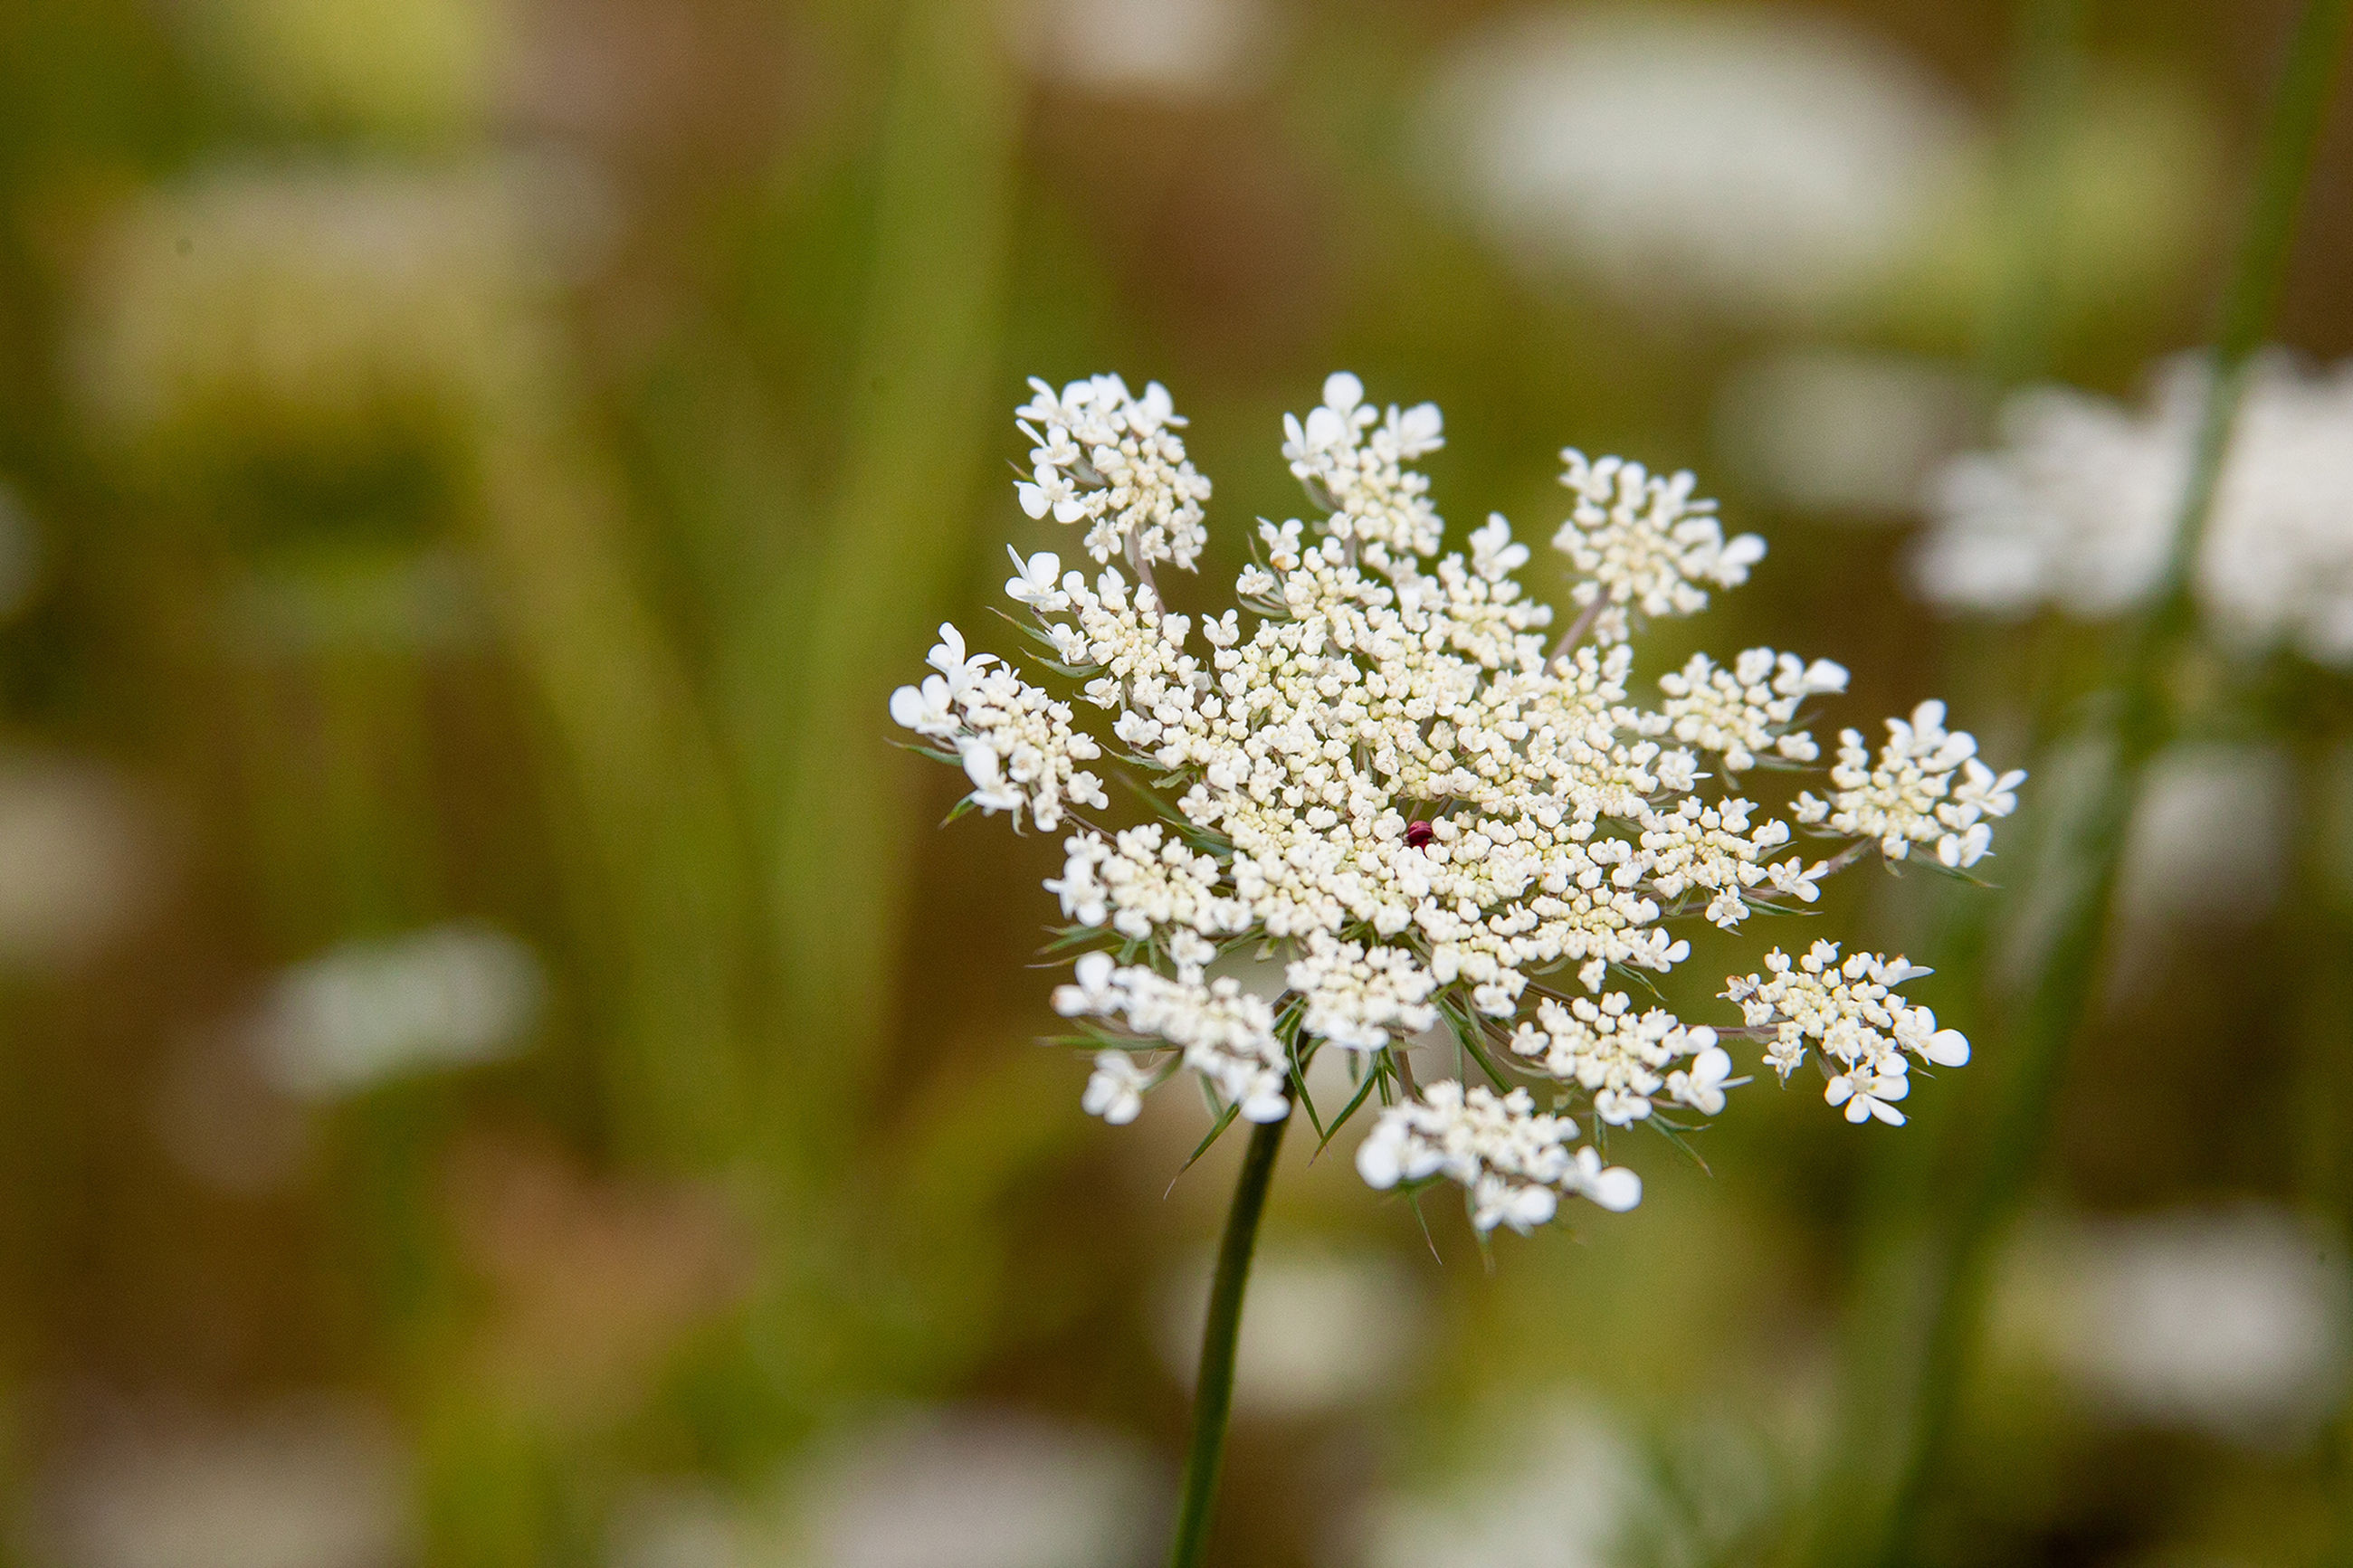 flower, flowering plant, plant, beauty in nature, freshness, fragility, vulnerability, growth, white color, selective focus, day, nature, close-up, focus on foreground, flower head, inflorescence, no people, outdoors, field, petal